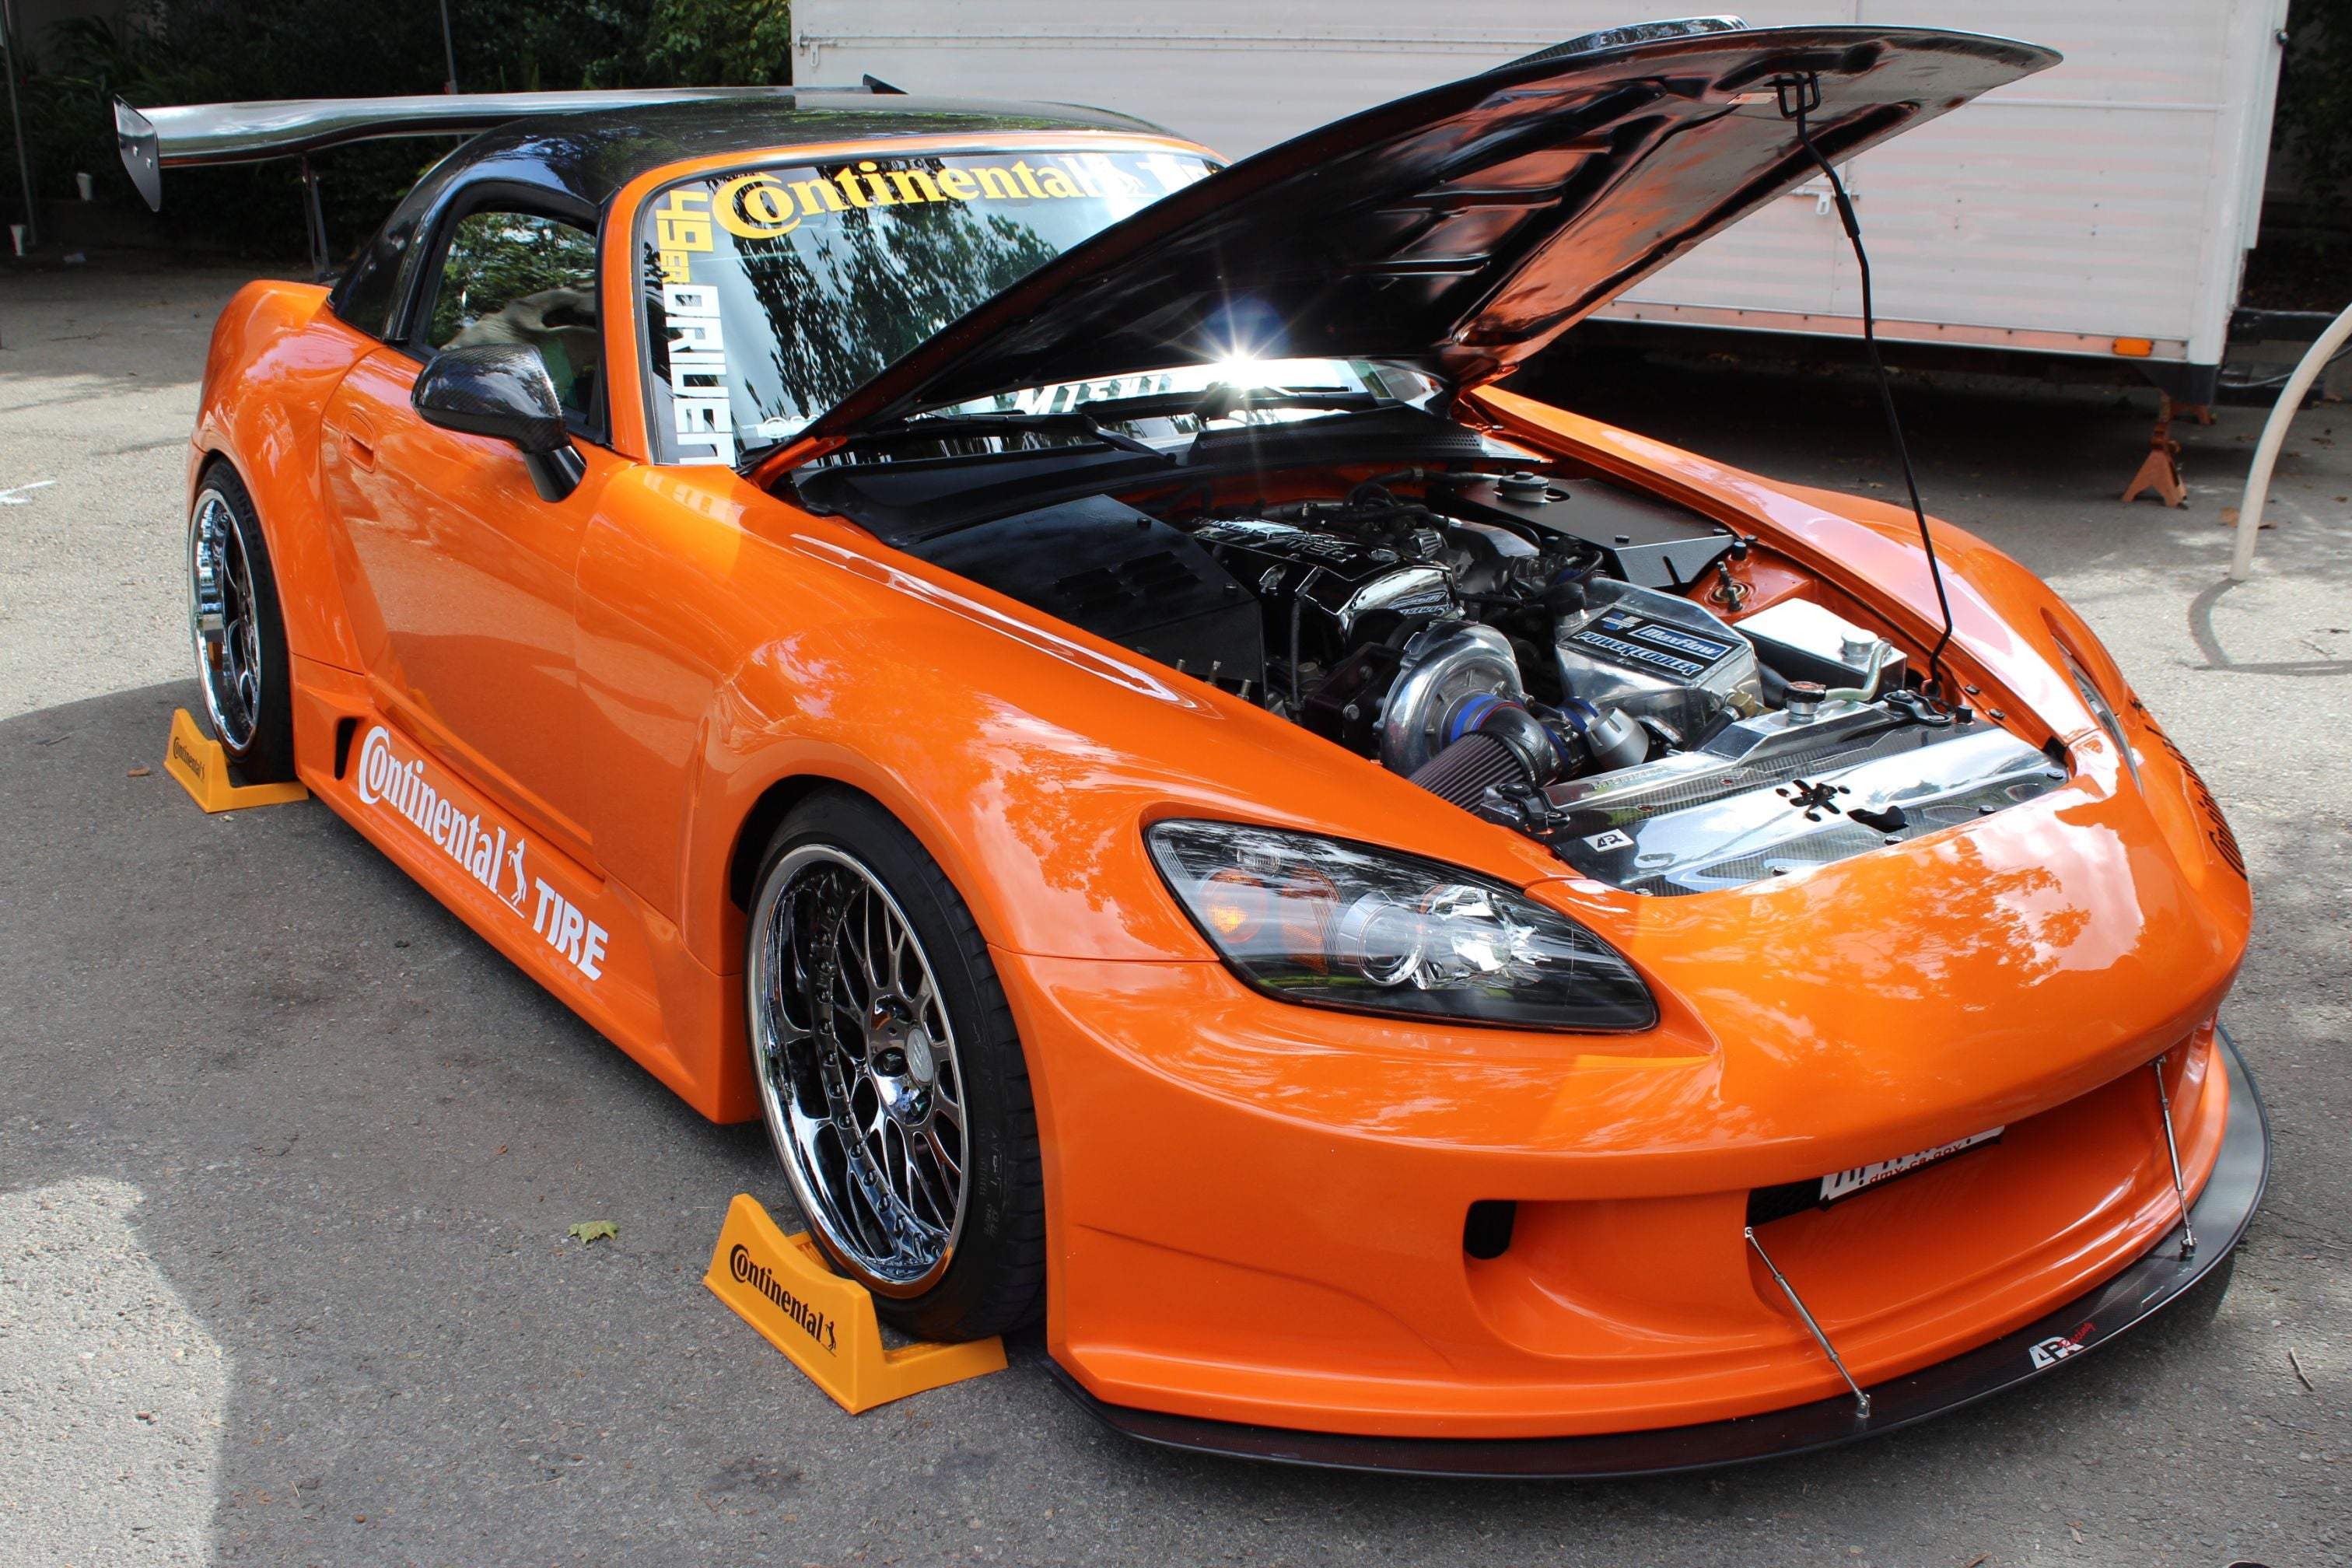 Danny's Vortech V-2 Supercharged APR Widebody Honda S2000